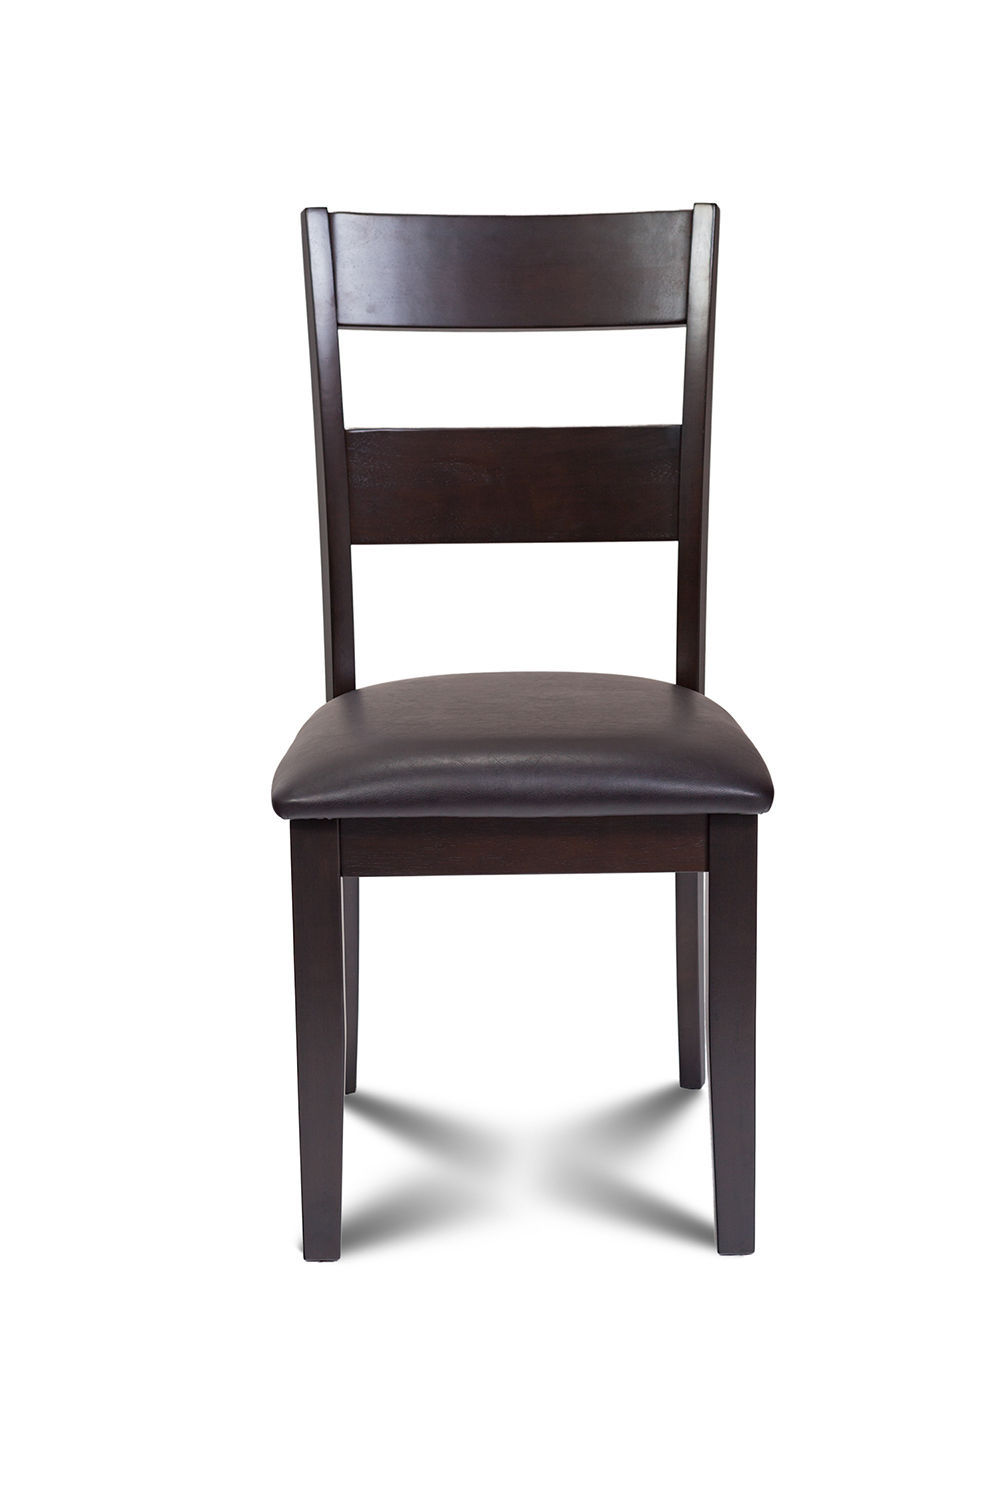 SET OF 6 KITCHEN DINING SIDE CHAIRS w/. FAUX LEATHER SEAT IN CAPPUCCINO